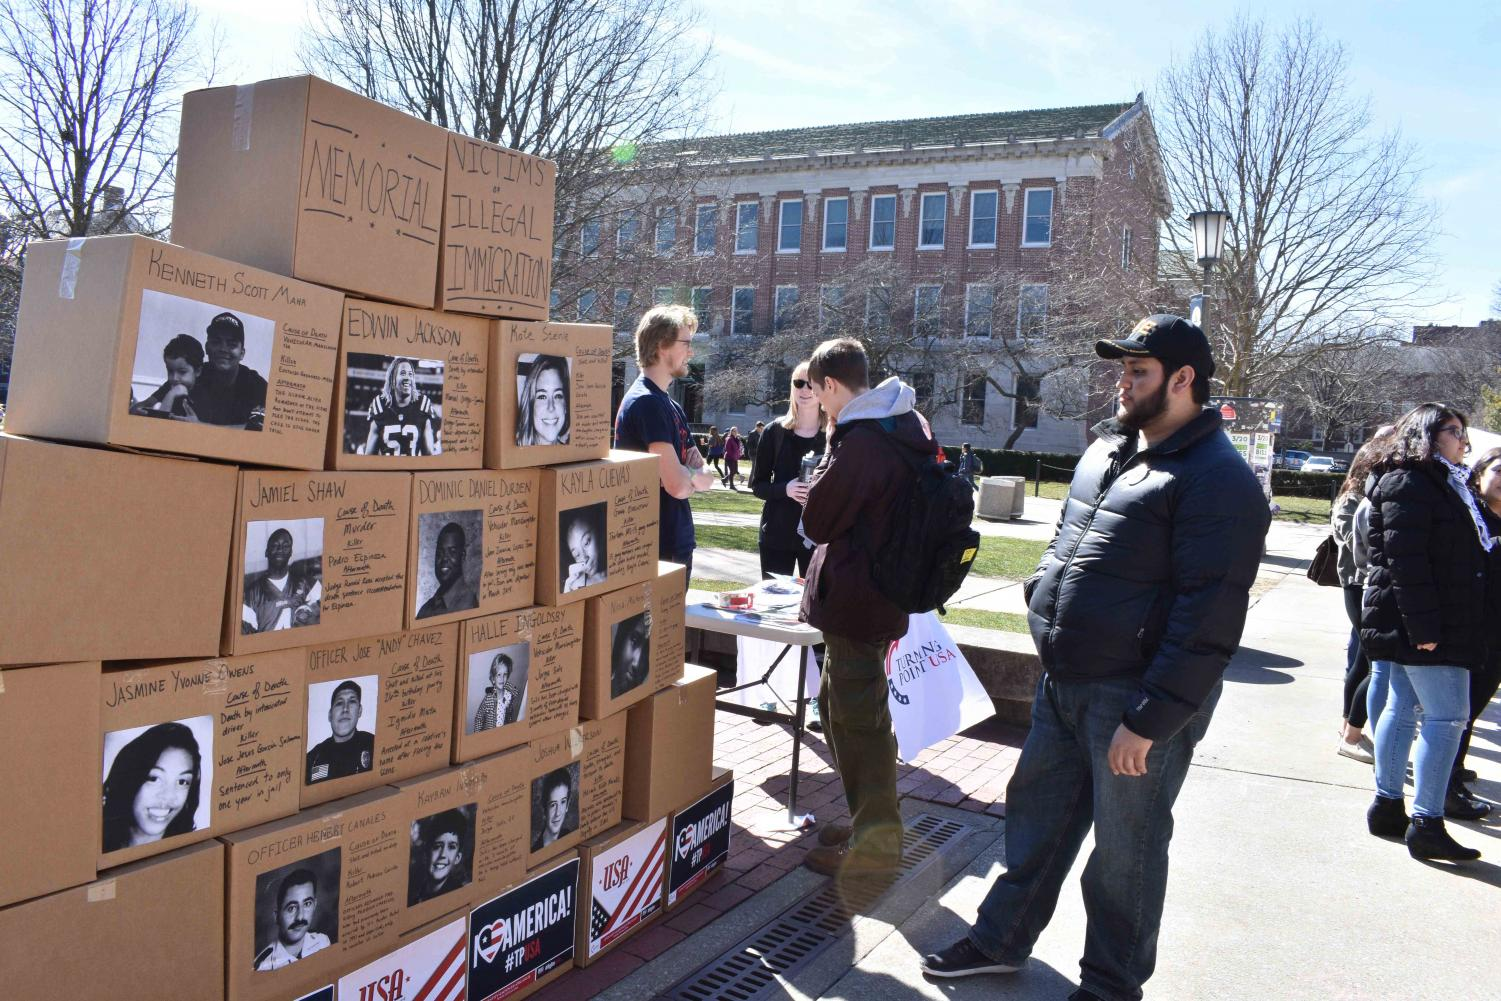 A student examines the Wall for Victims demonstration by Turning Point USA on the Main Quad on Mar. 15.